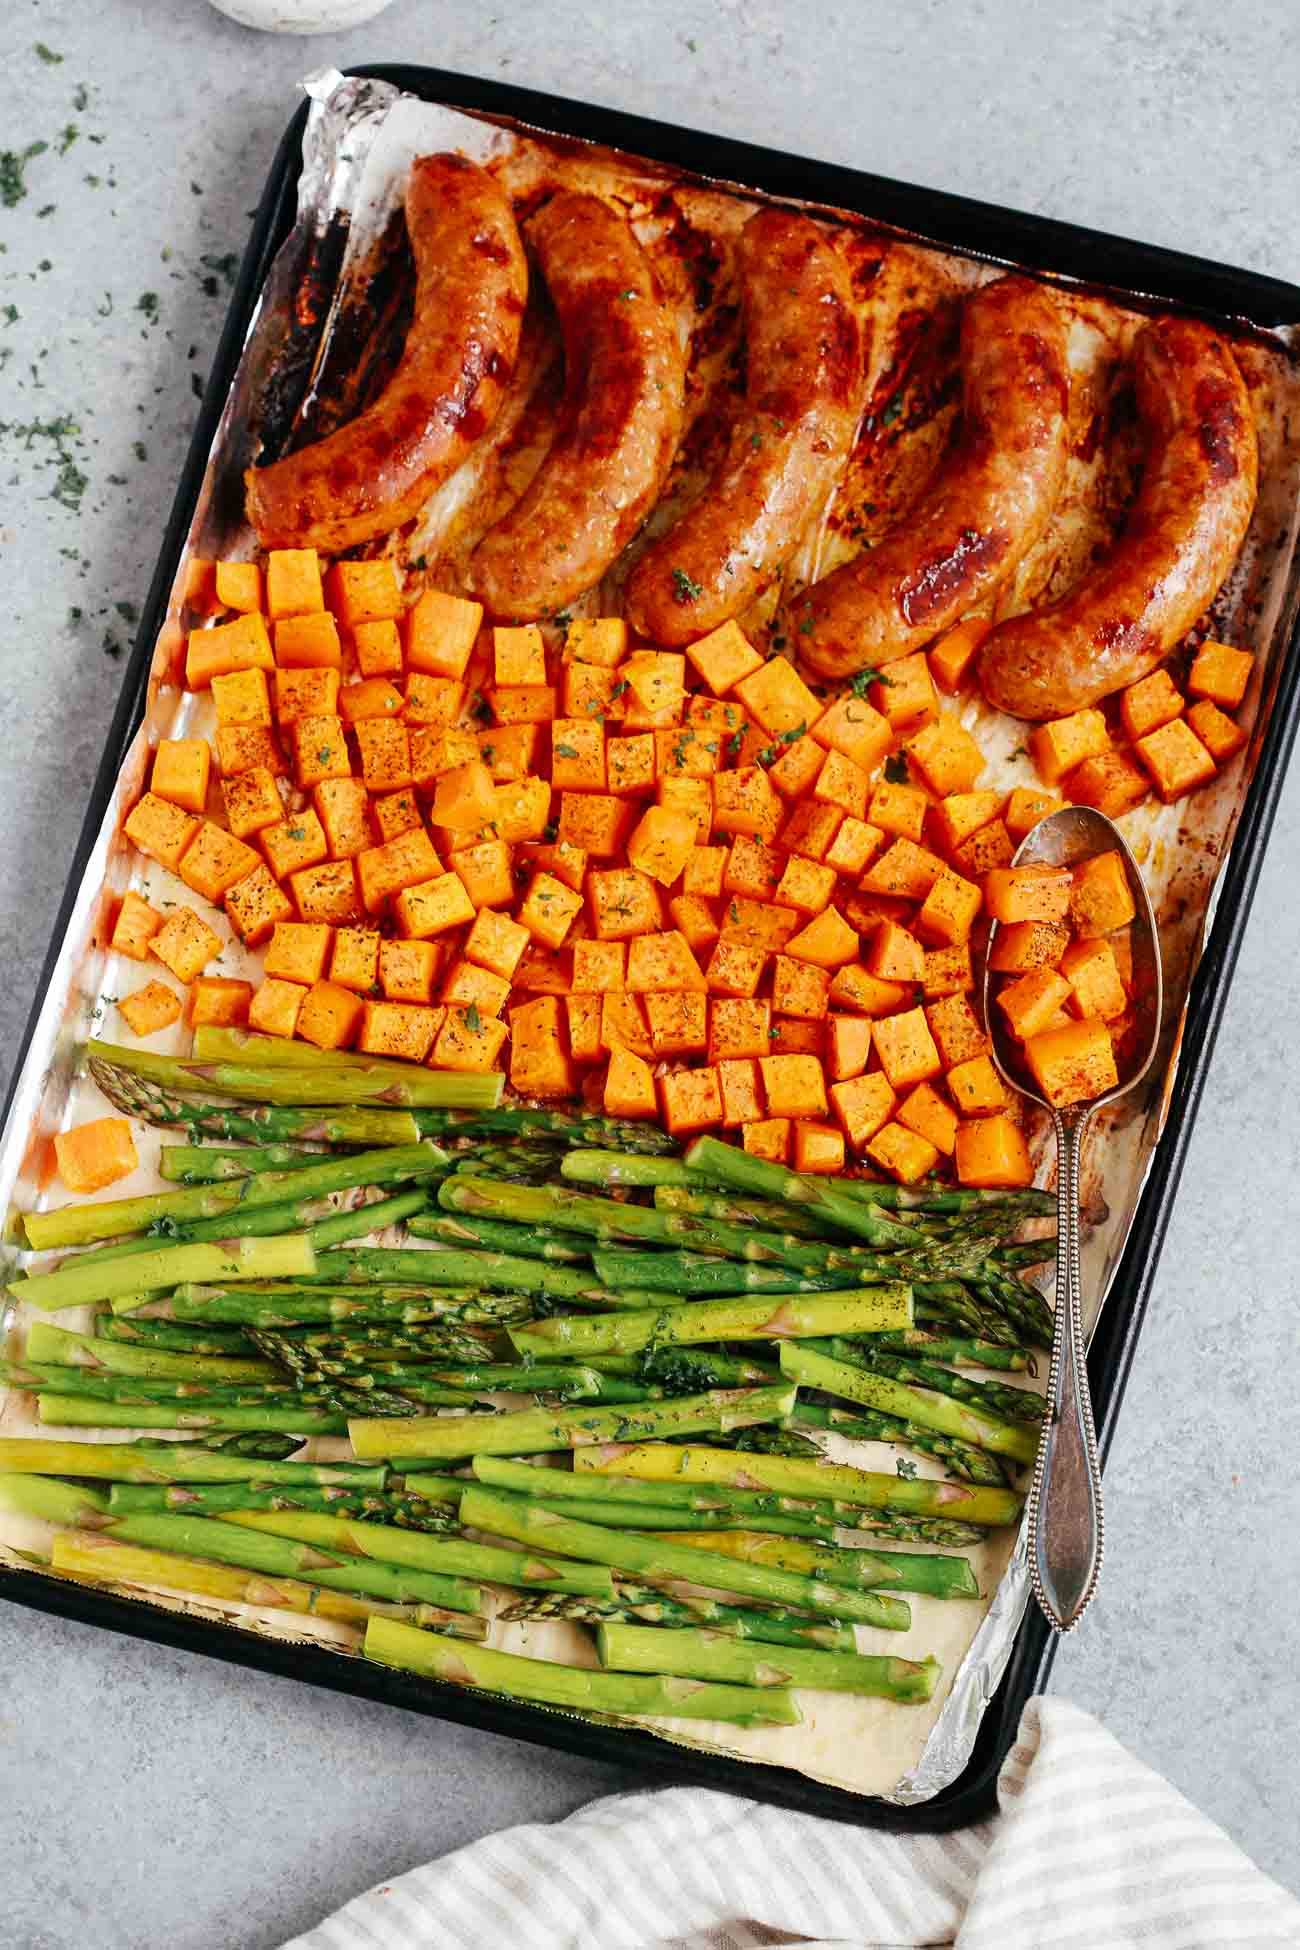 Overhead view of a sheet pan containing cooked sausage, sweet potatoes, and asparagus.